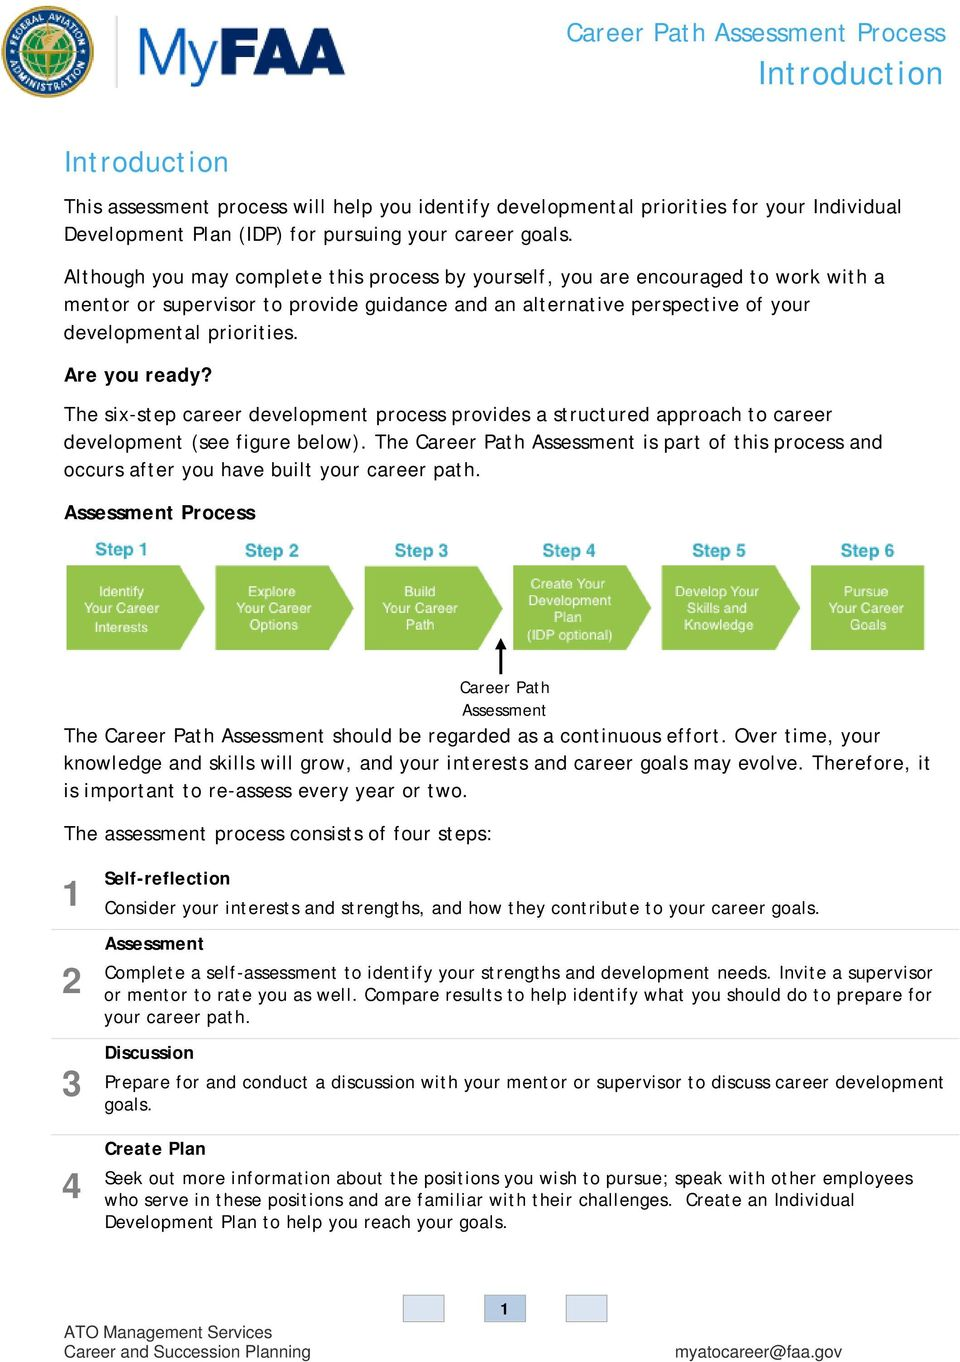 Are you ready? The six-step career development process provides a structured approach to career development (see figure below).